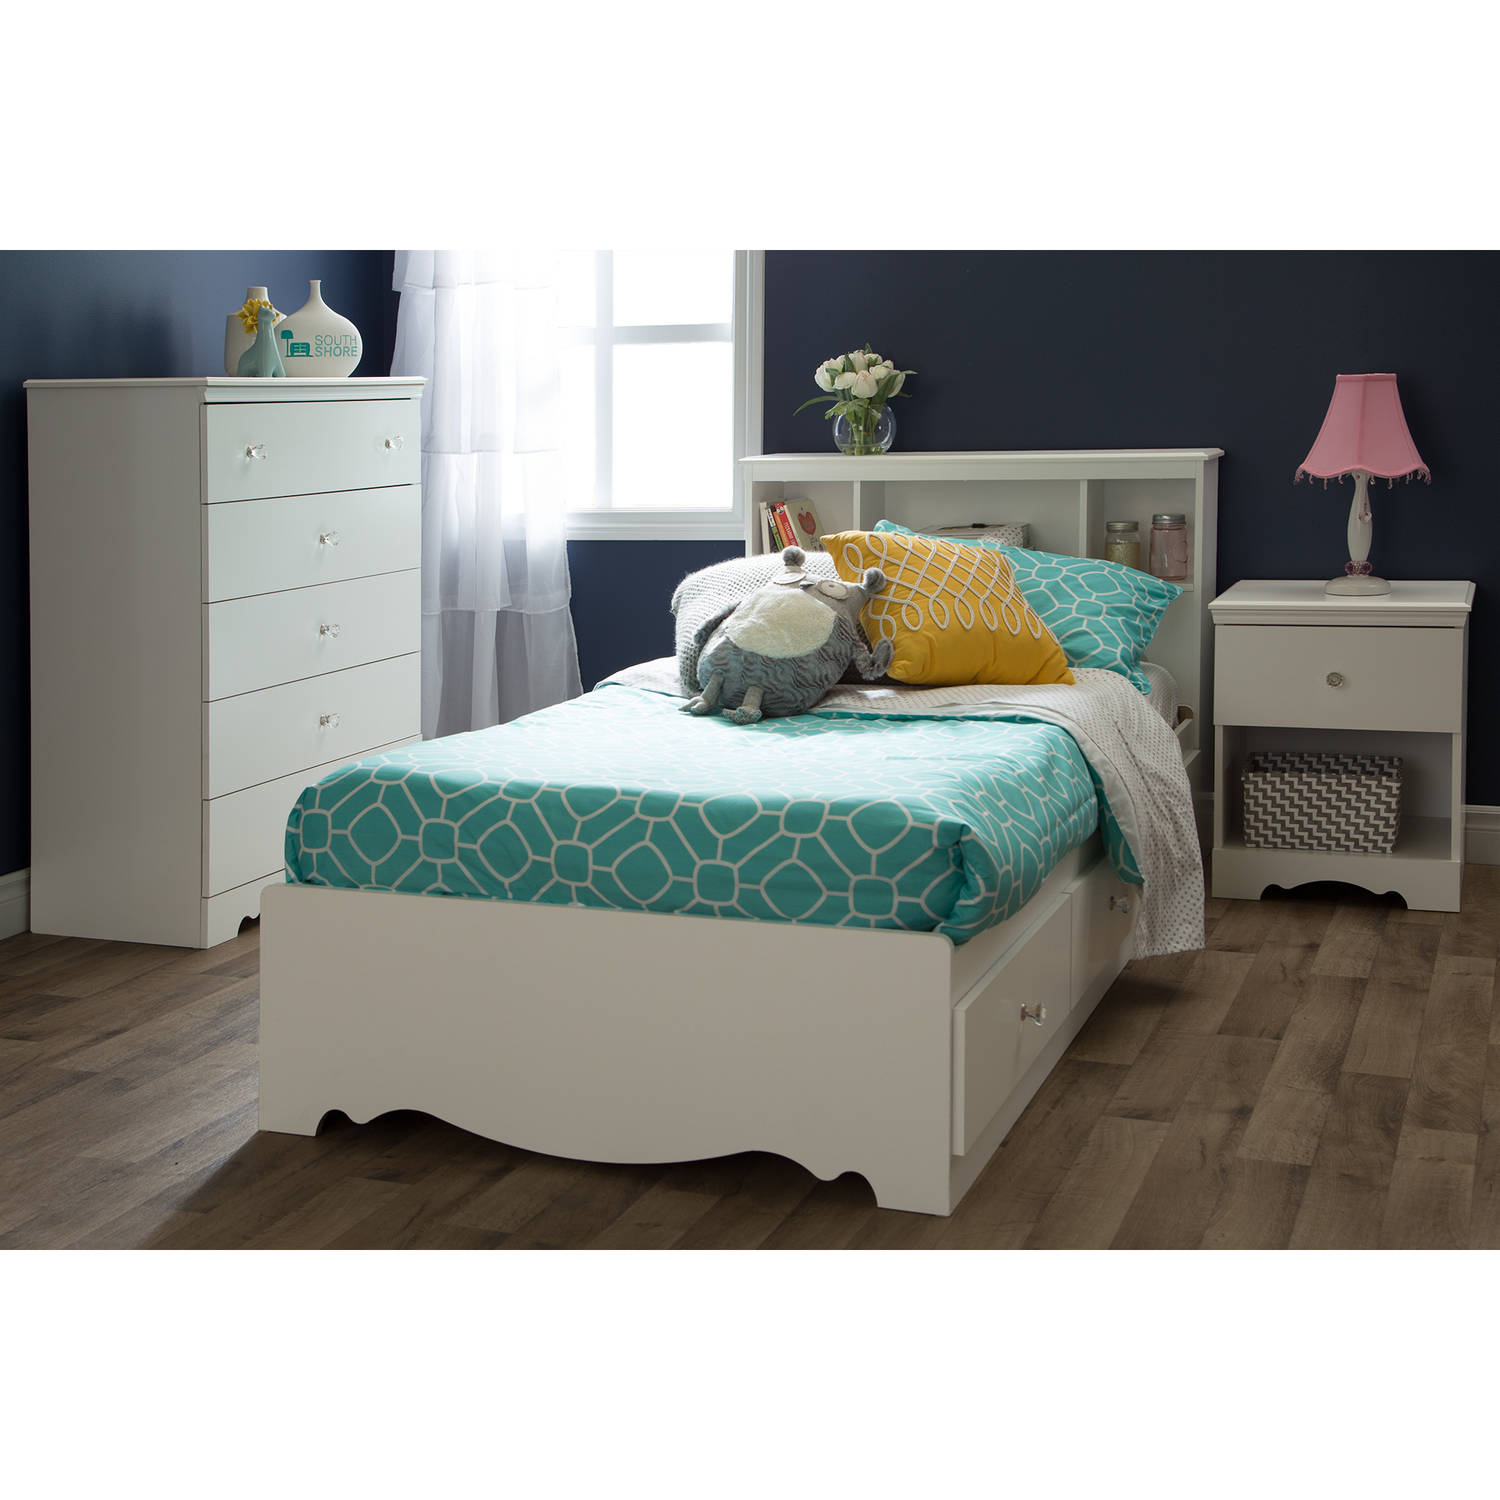 South Shore Crystal Twin Storage Bed 39 with 3 Drawers Pure